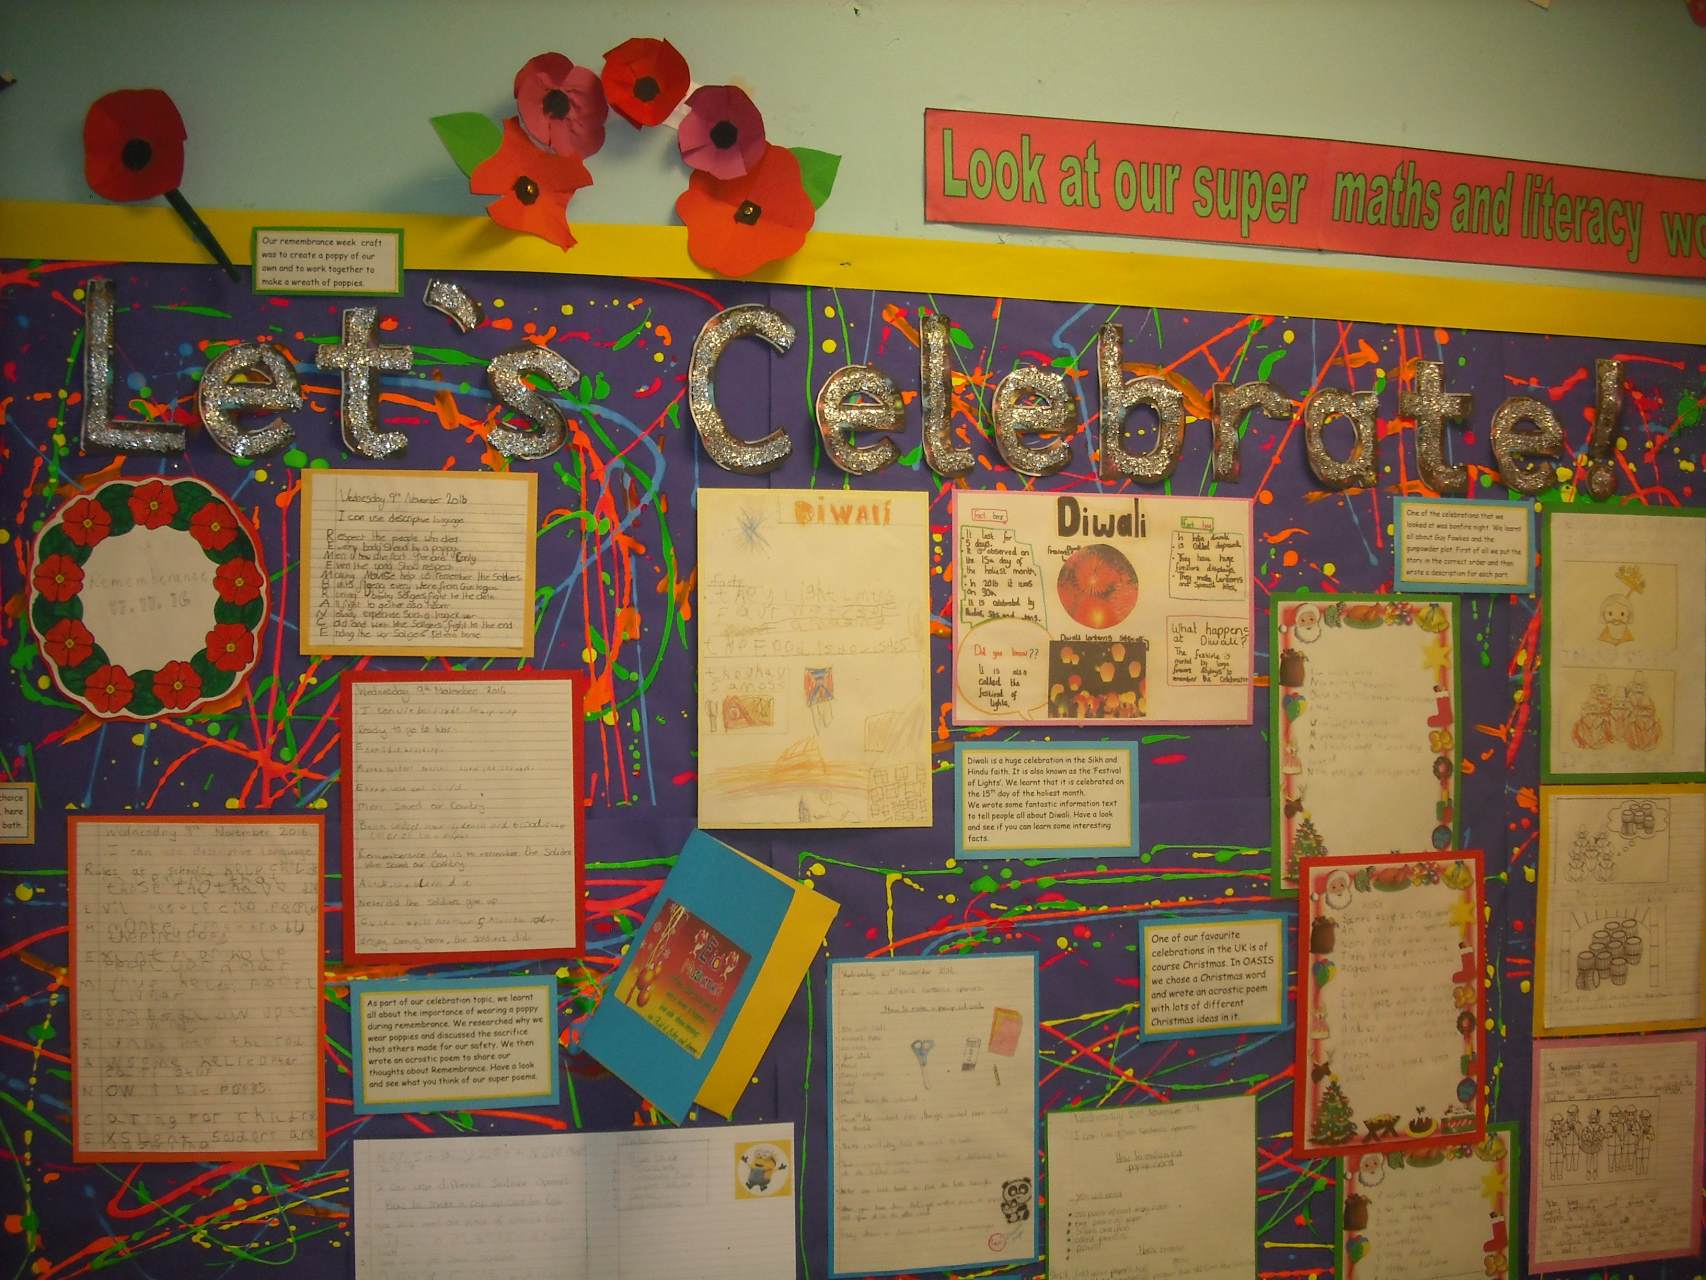 Let's Celebrate display board, showing the excellent work done by the pupils